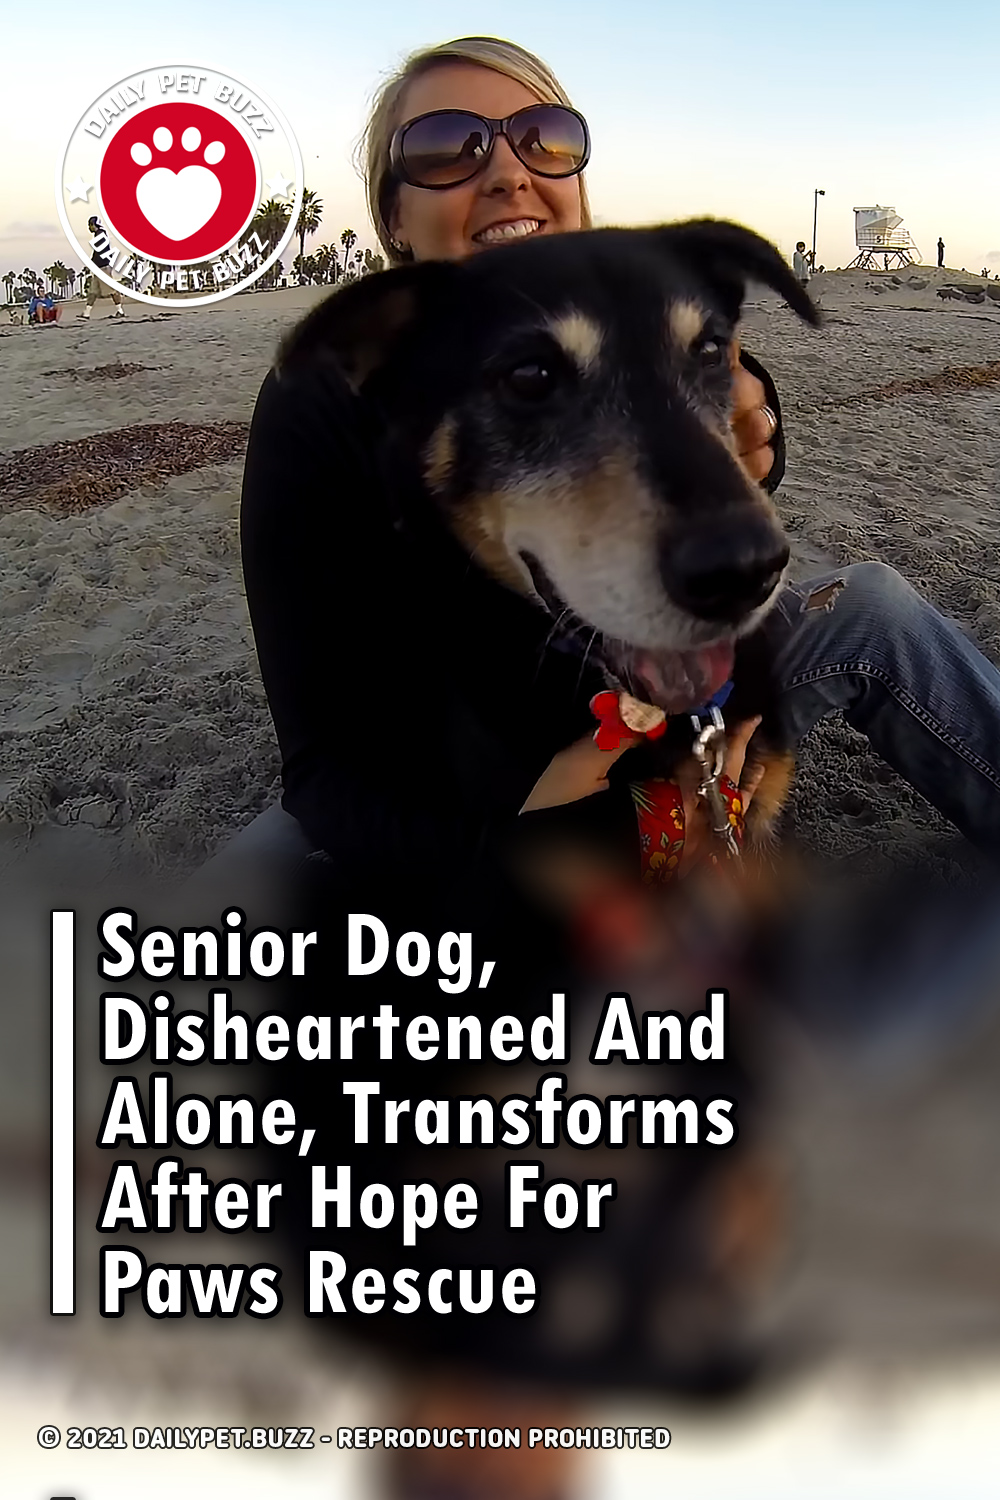 Senior Dog, Disheartened And Alone, Transforms After Hope For Paws Rescue